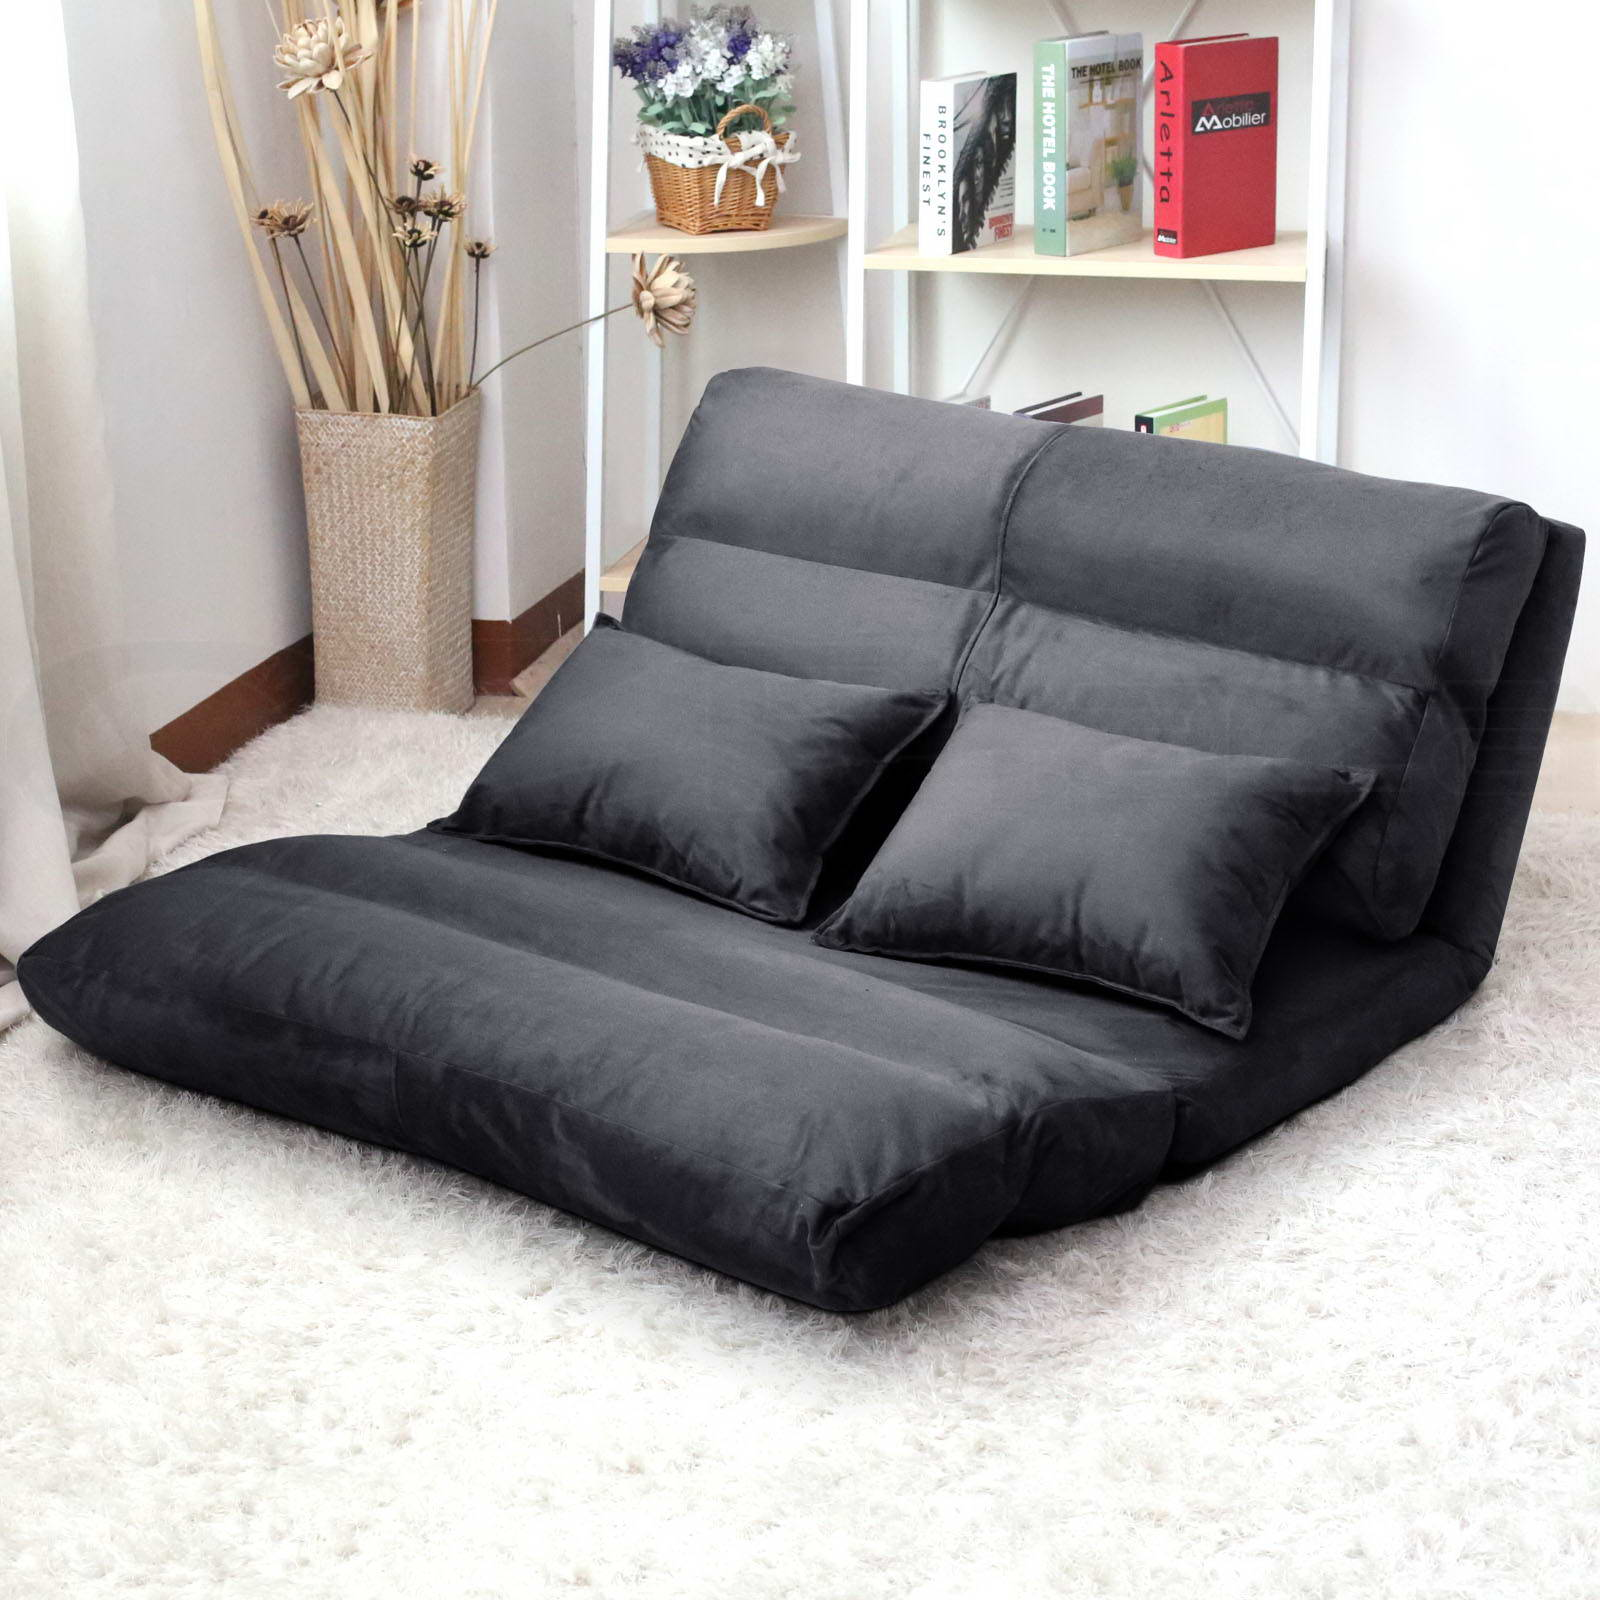 Bed Chair Lounge Sofa Bed Double Size Floor Recliner Folding Chaise